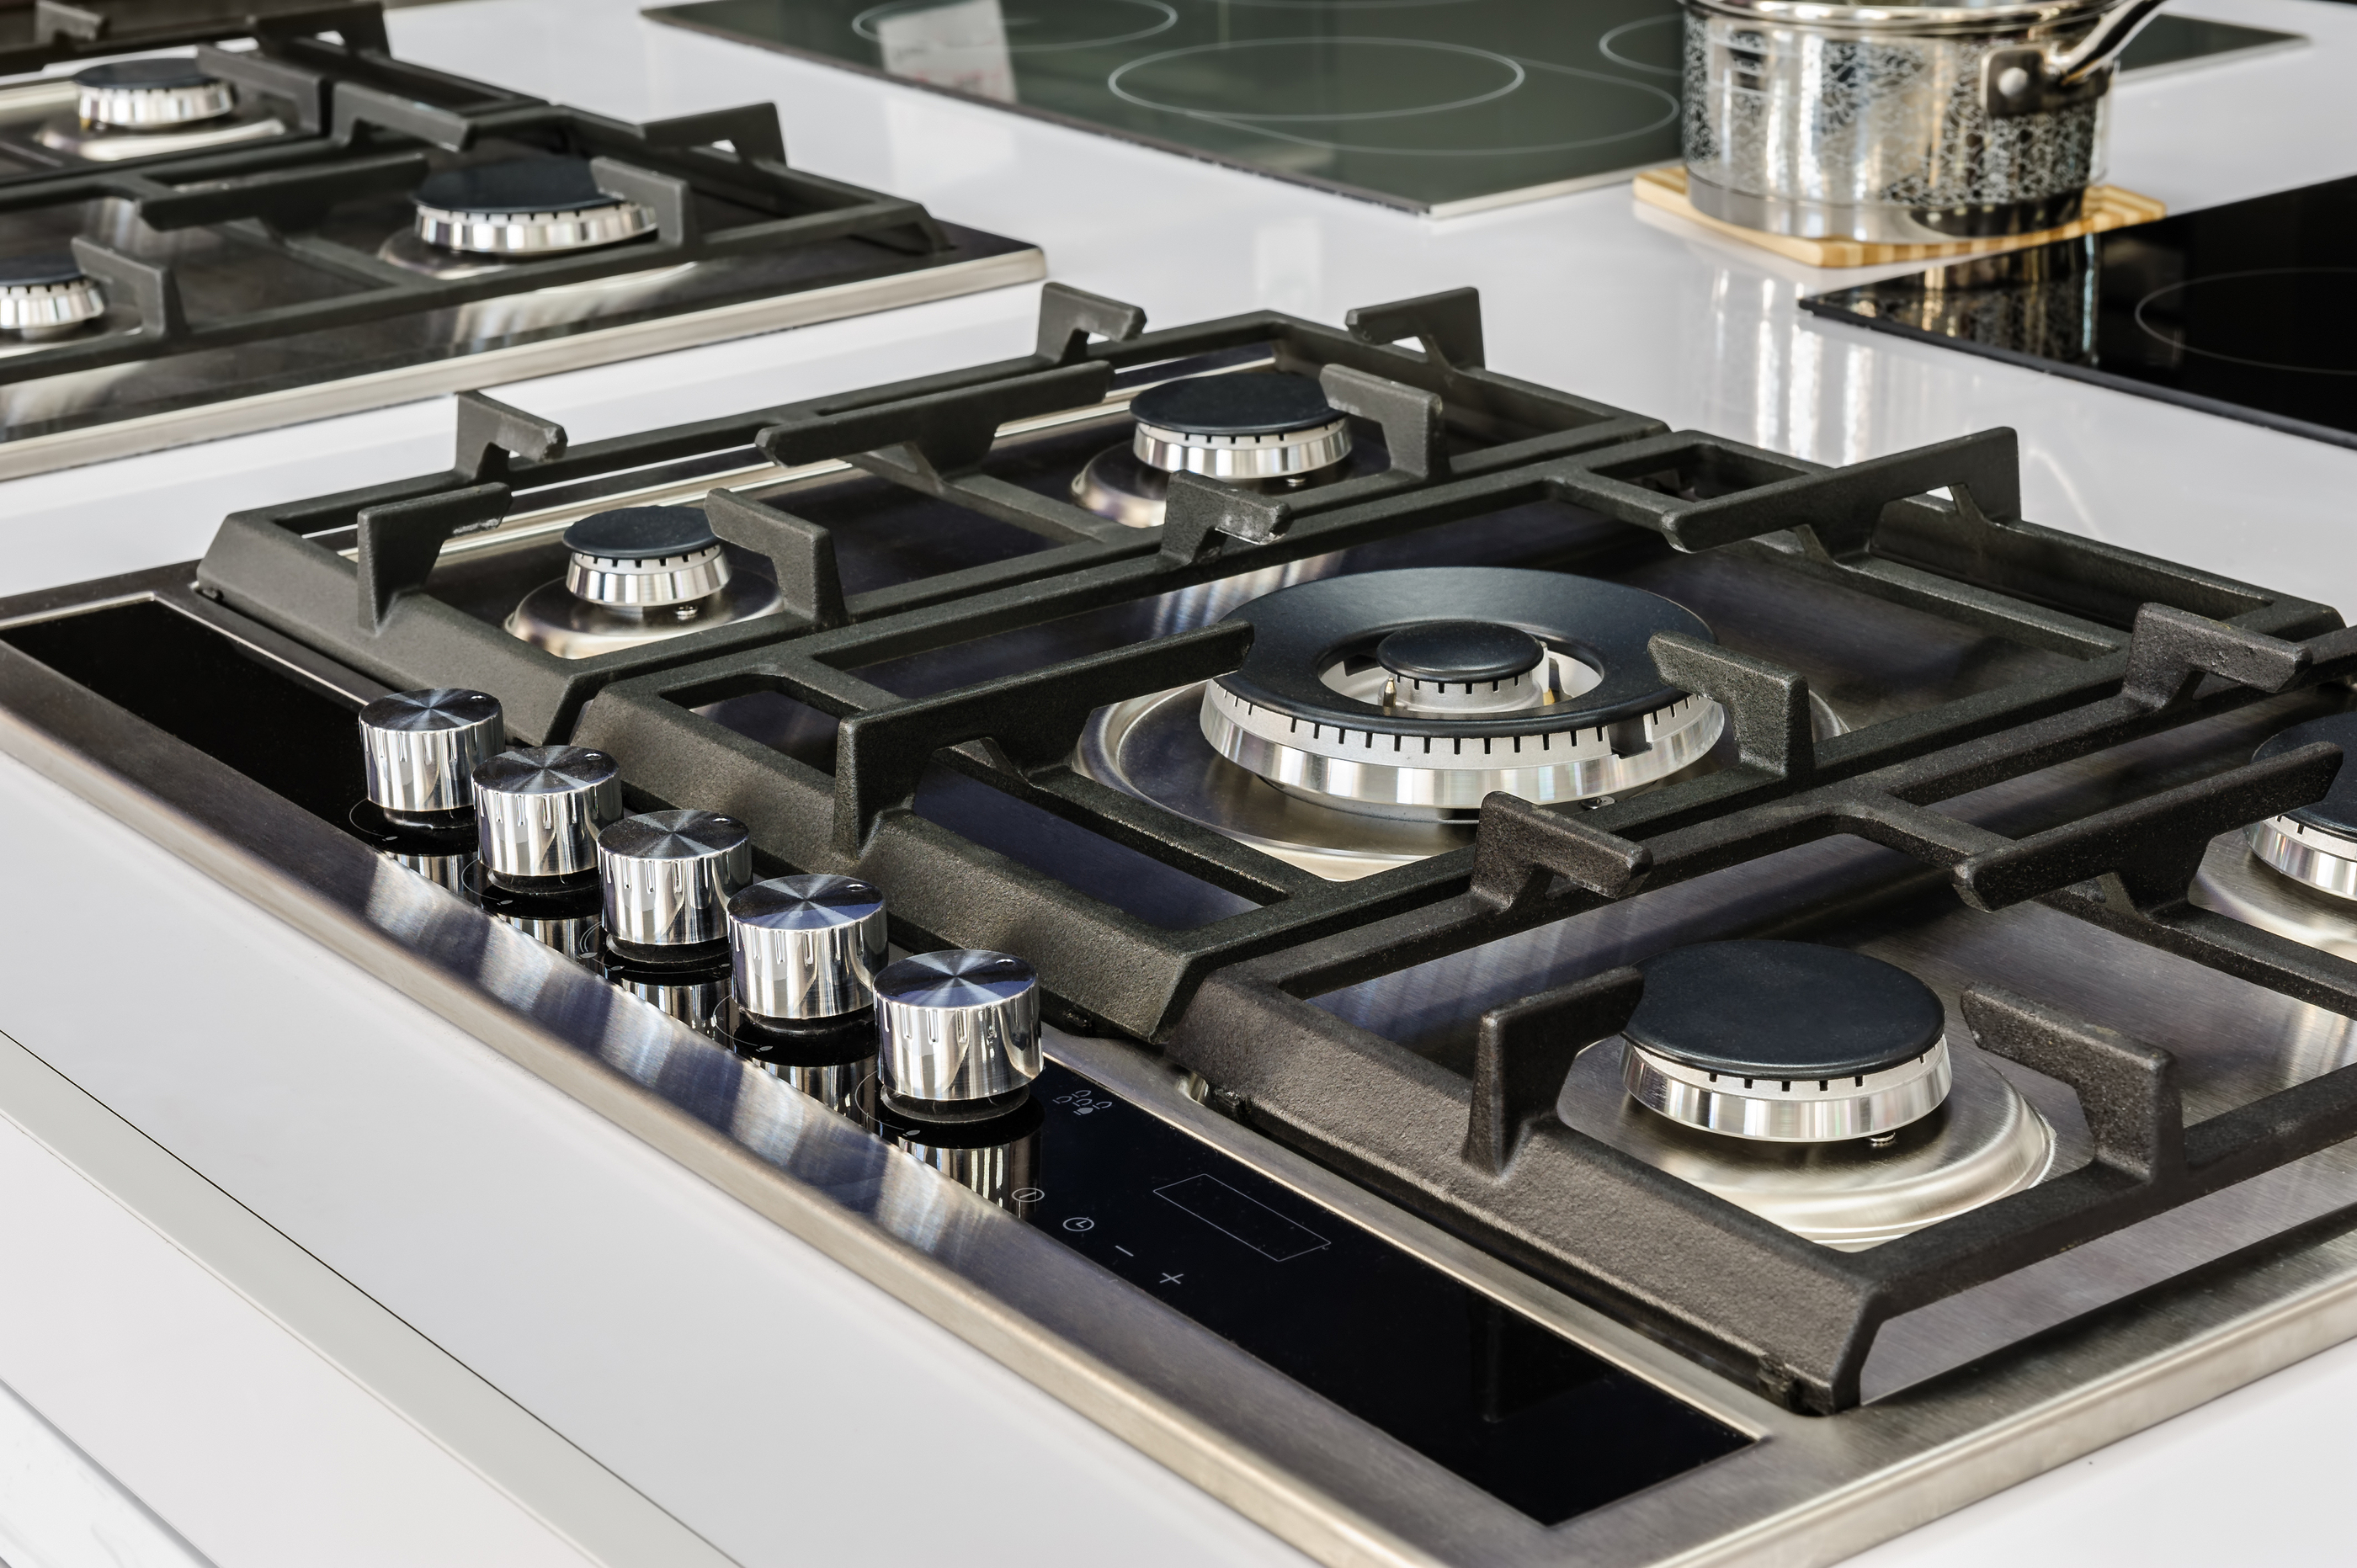 Gas stove with stainless tray selling in appliance retail store,